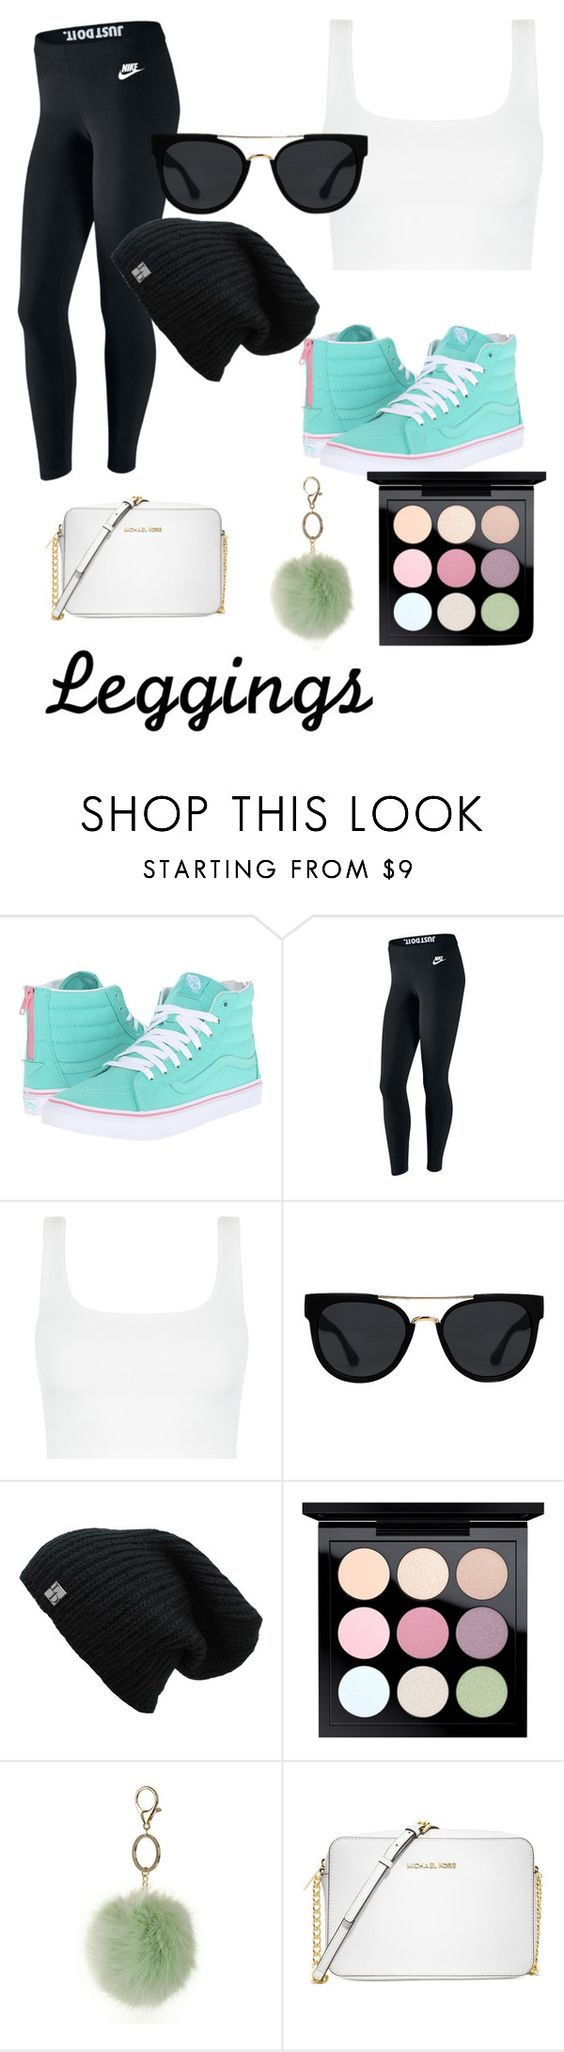 """Pop of color"" by bturspringer ❤ liked on Polyvore featuring Vans, NIKE, Quay, MAC Cosmetics, Dorothy Perkins, Michael Kors, Leggings and WardrobeStaples"